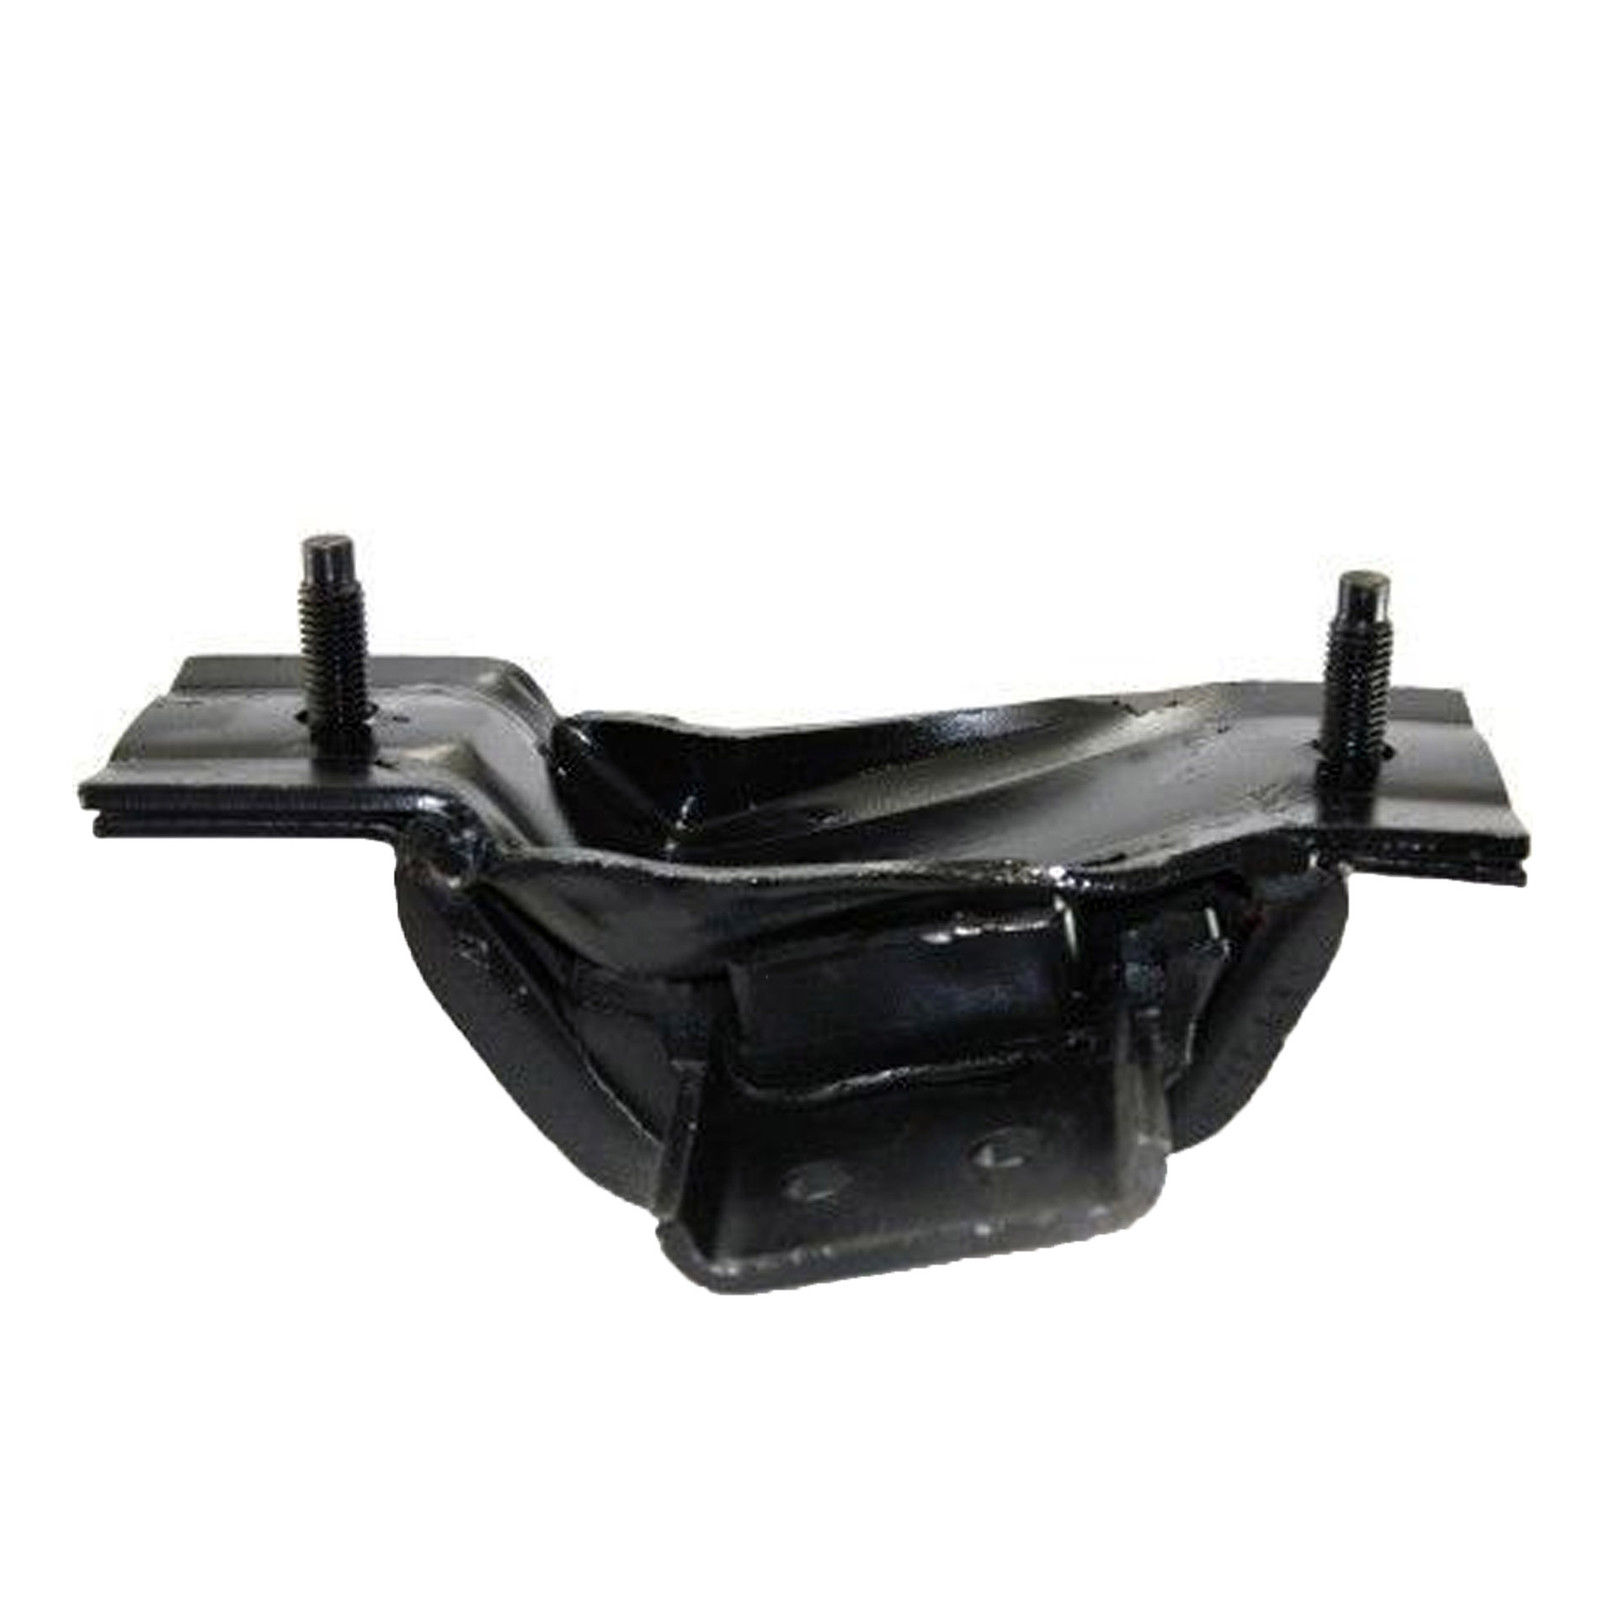 Front Left Engine Mount 1988-1997 for Ford F-250 F-350 F59 F Super Duty 7.3L